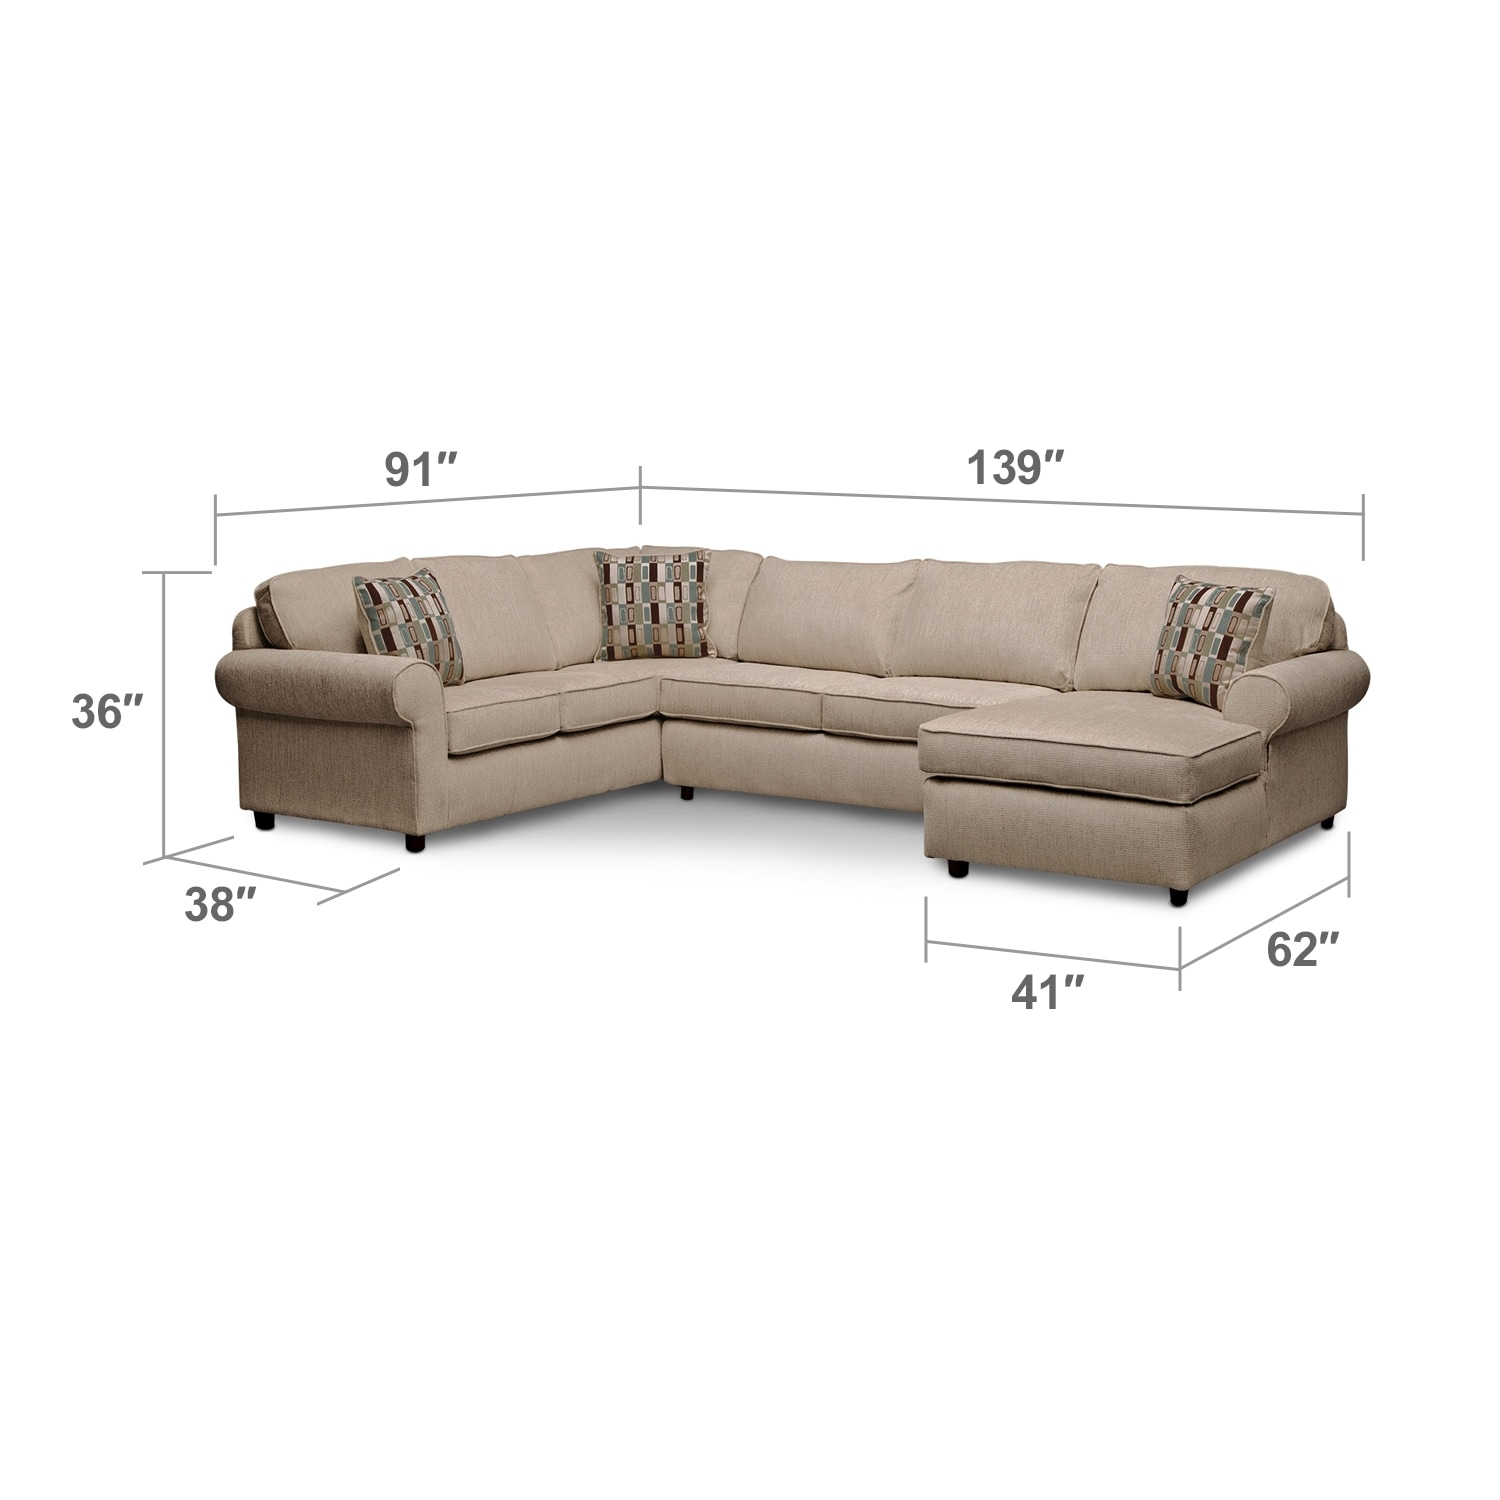 Living Room Furniture - Monarch 3-Piece Right-Facing Sectional - Taupe